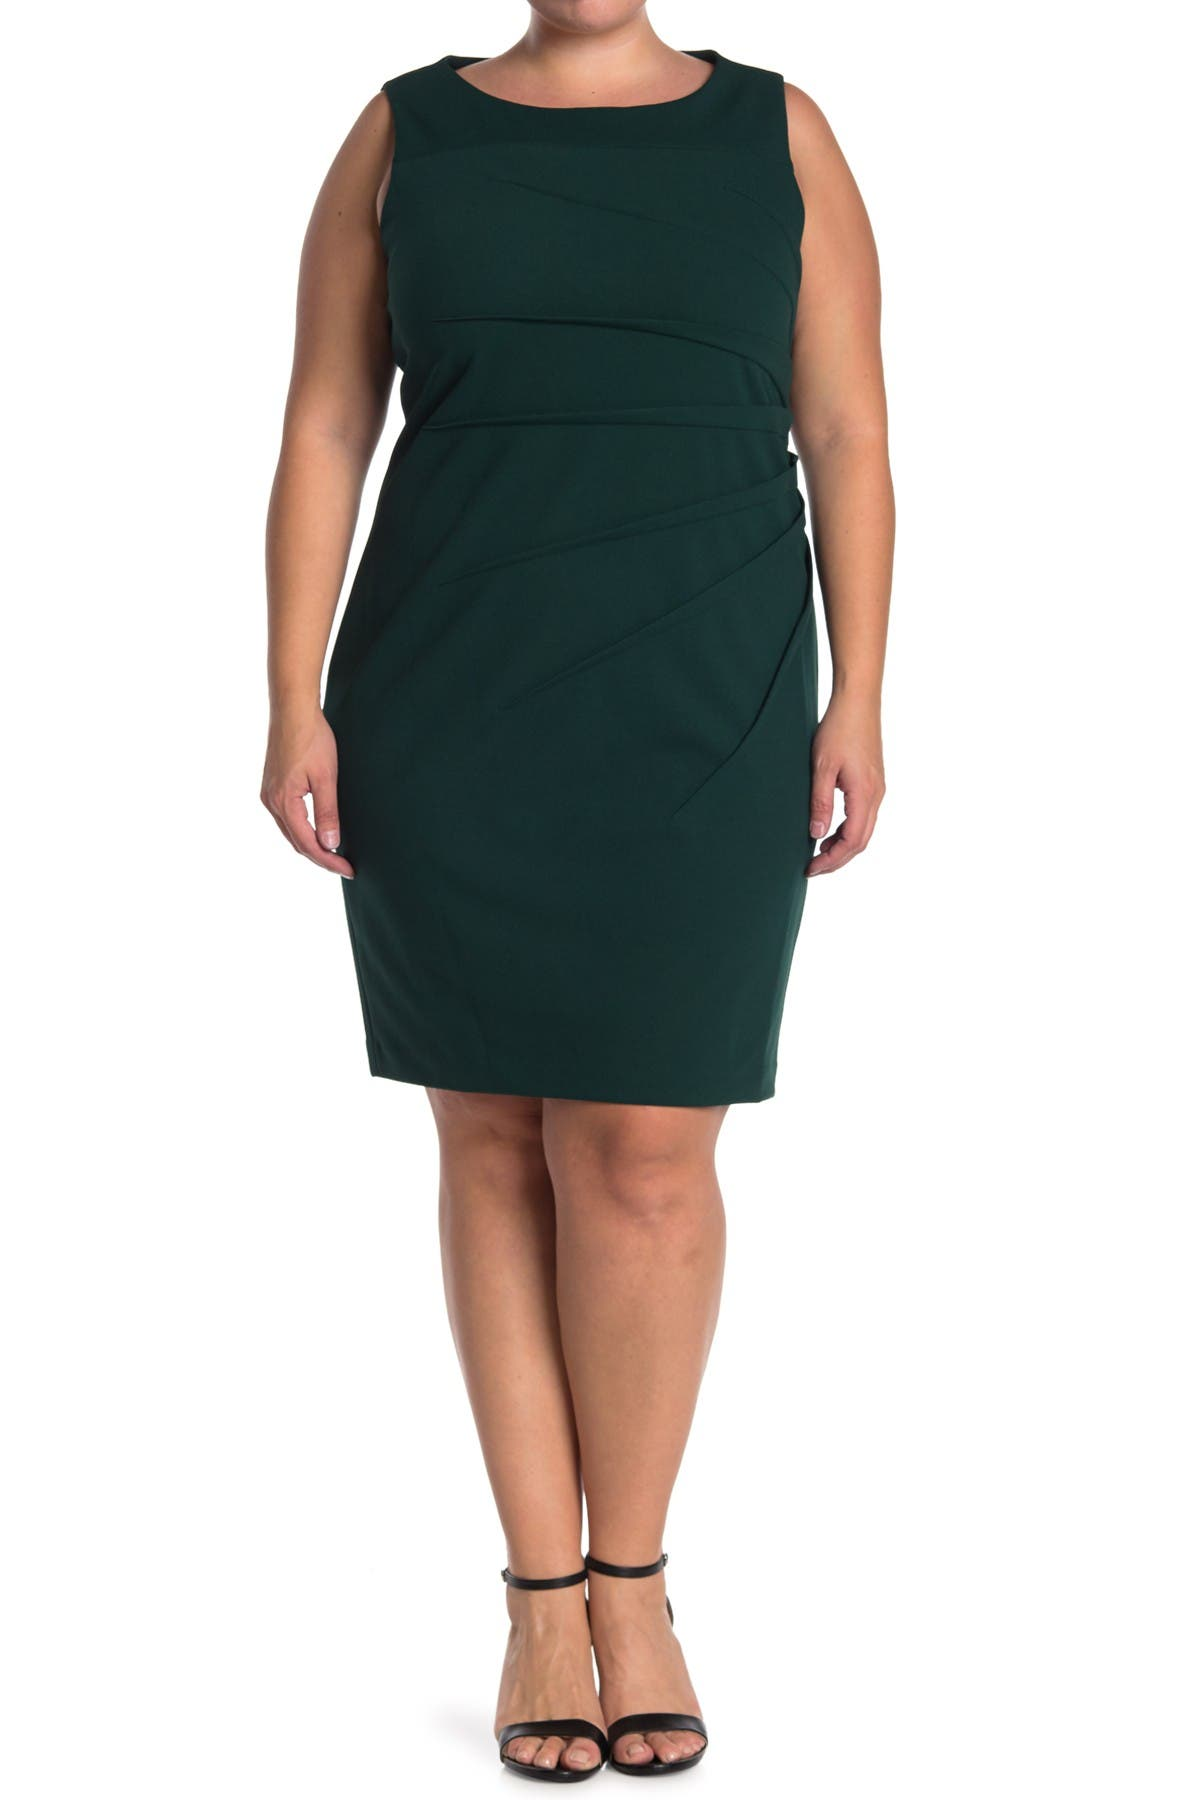 Image of Calvin Klein Starburst Pleat Sleeveless Sheath Dress